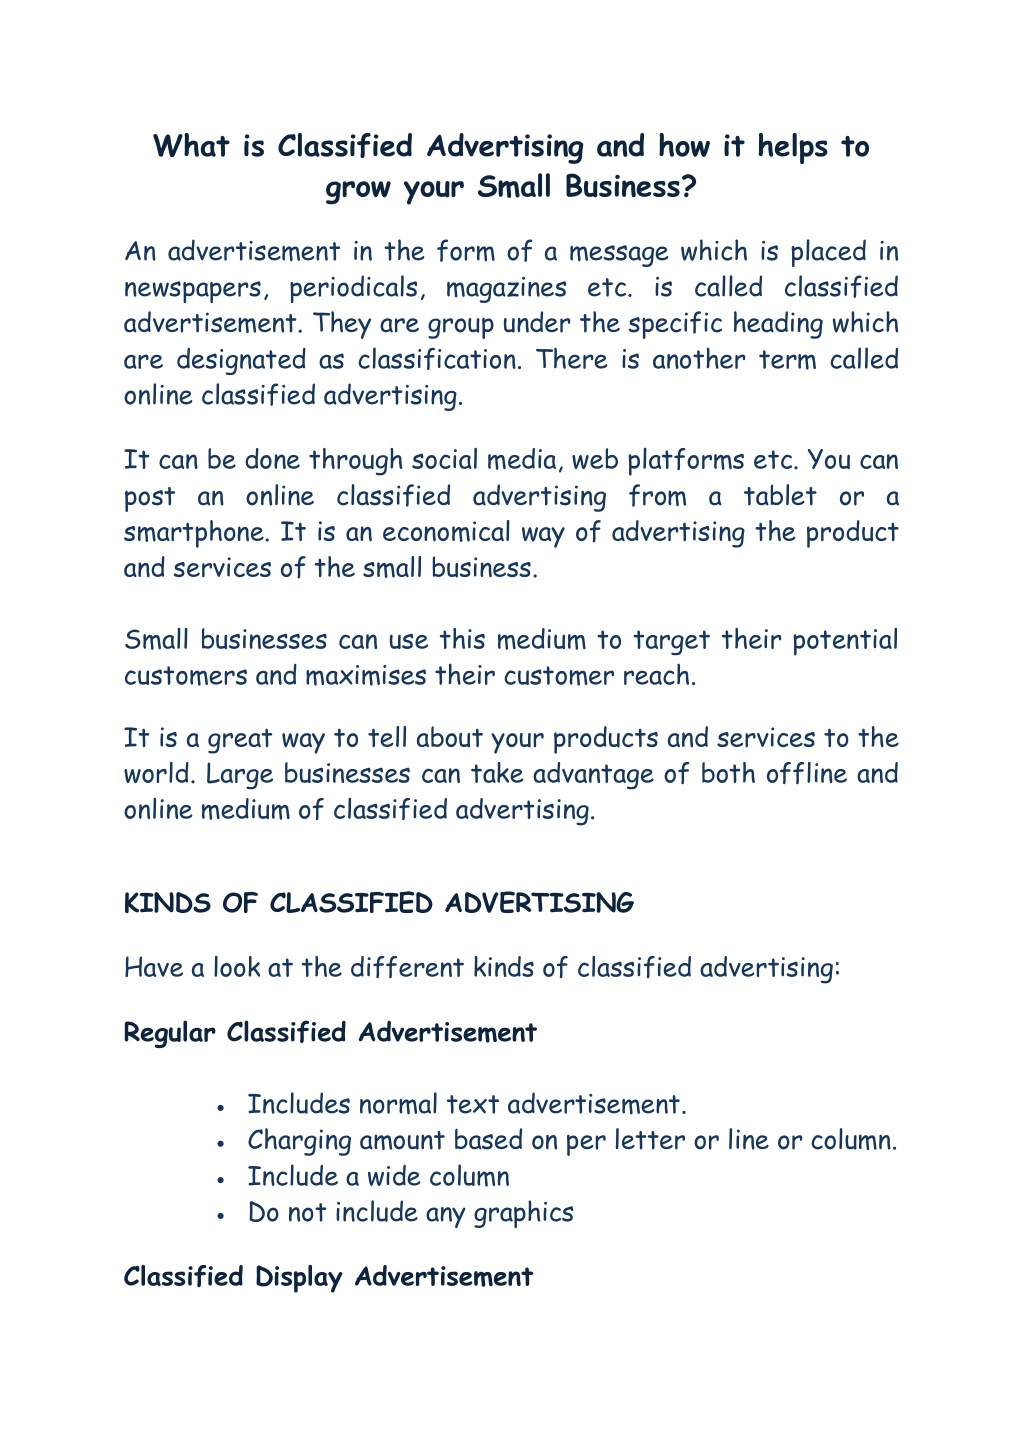 What is Classified Advertising and how it helps to grow your Small Business?